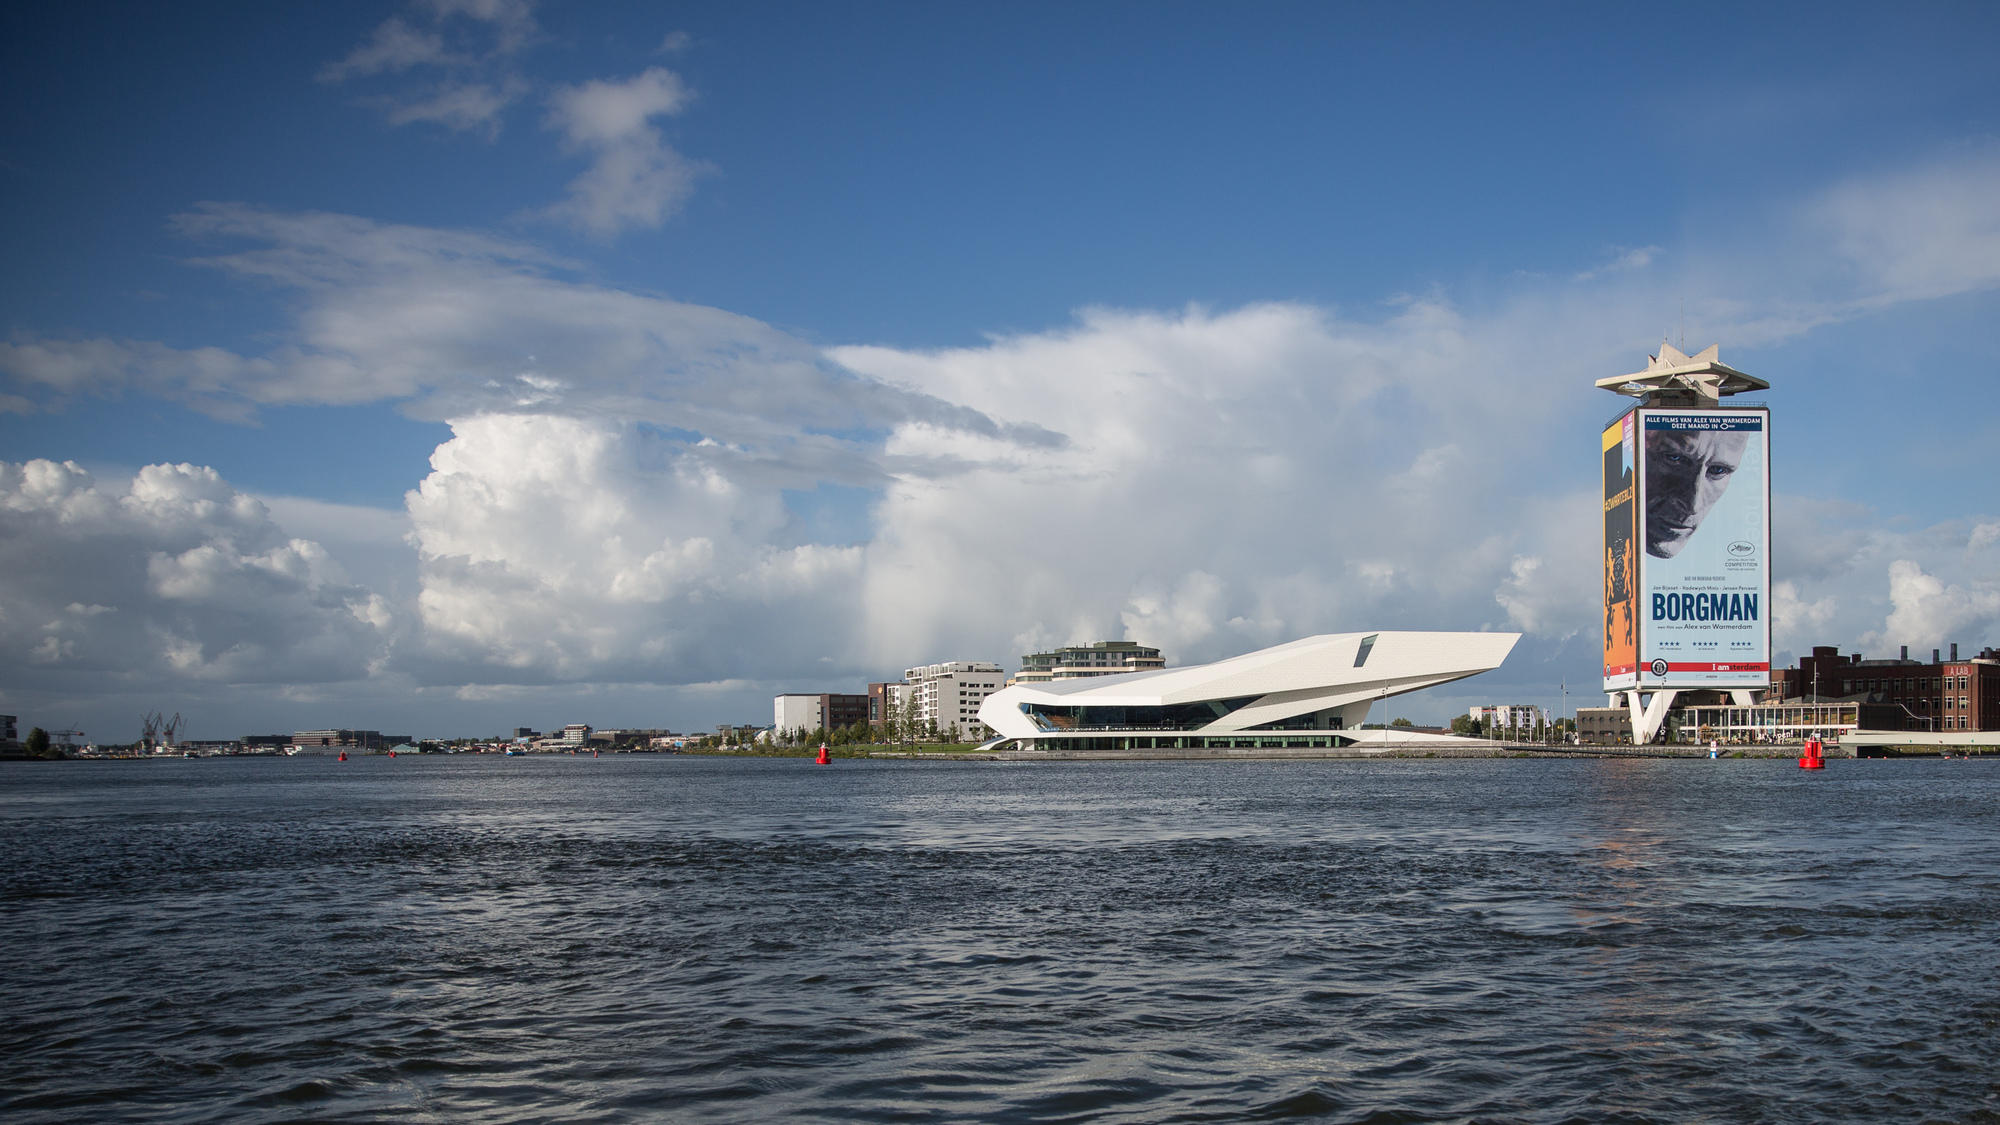 The EYE Film Institute Netherlands is a nice built film museum and cinema building with interesting exhibitions.